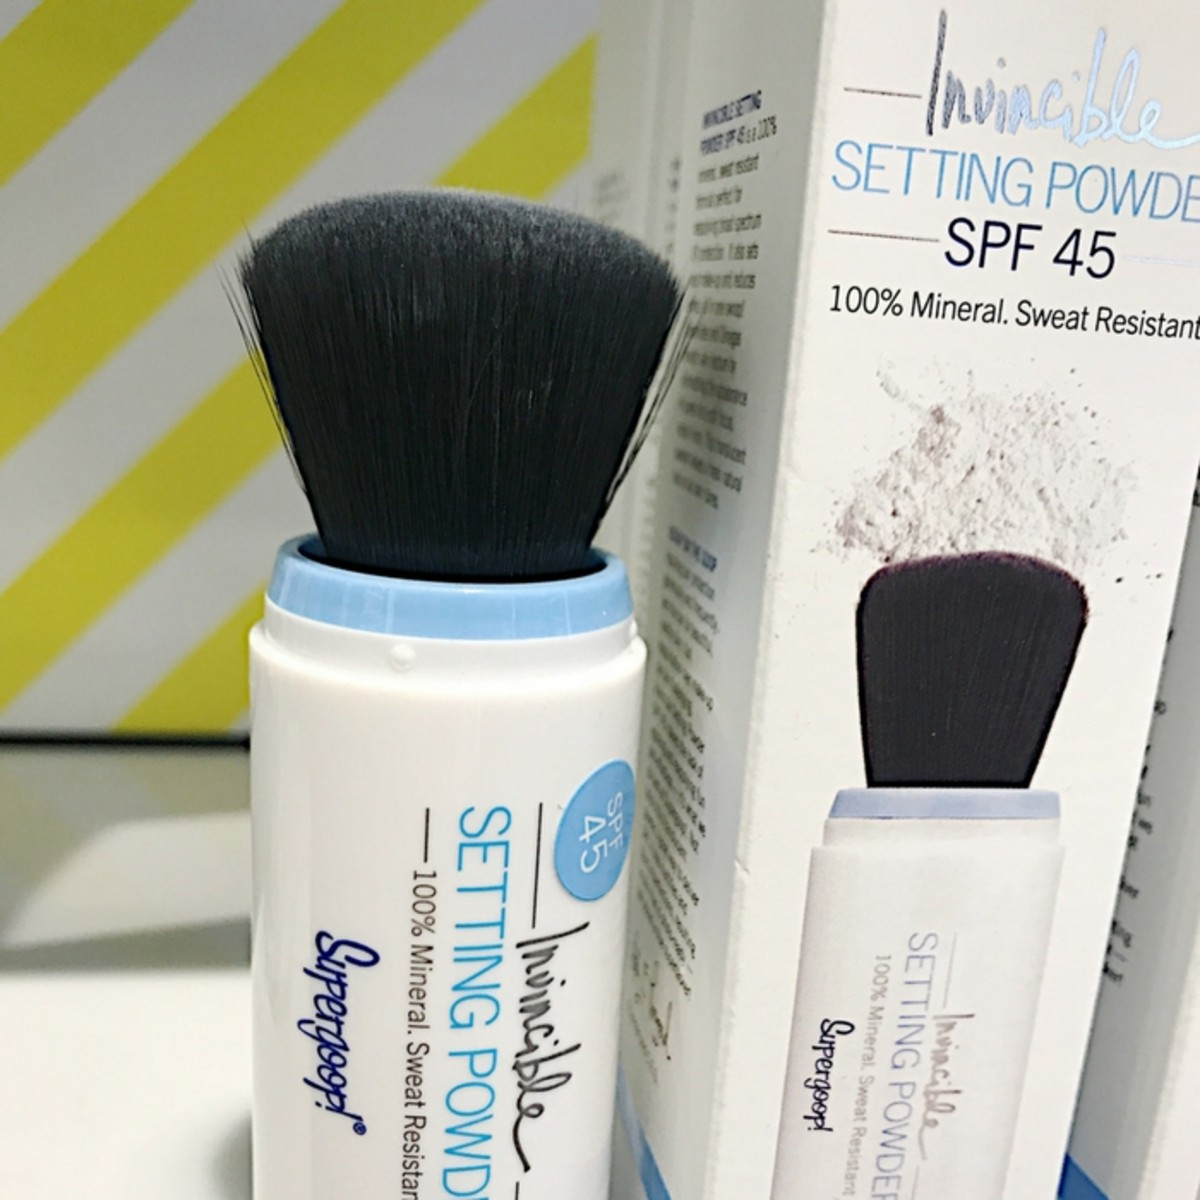 Supergoop Mineral Powder Sunscreen